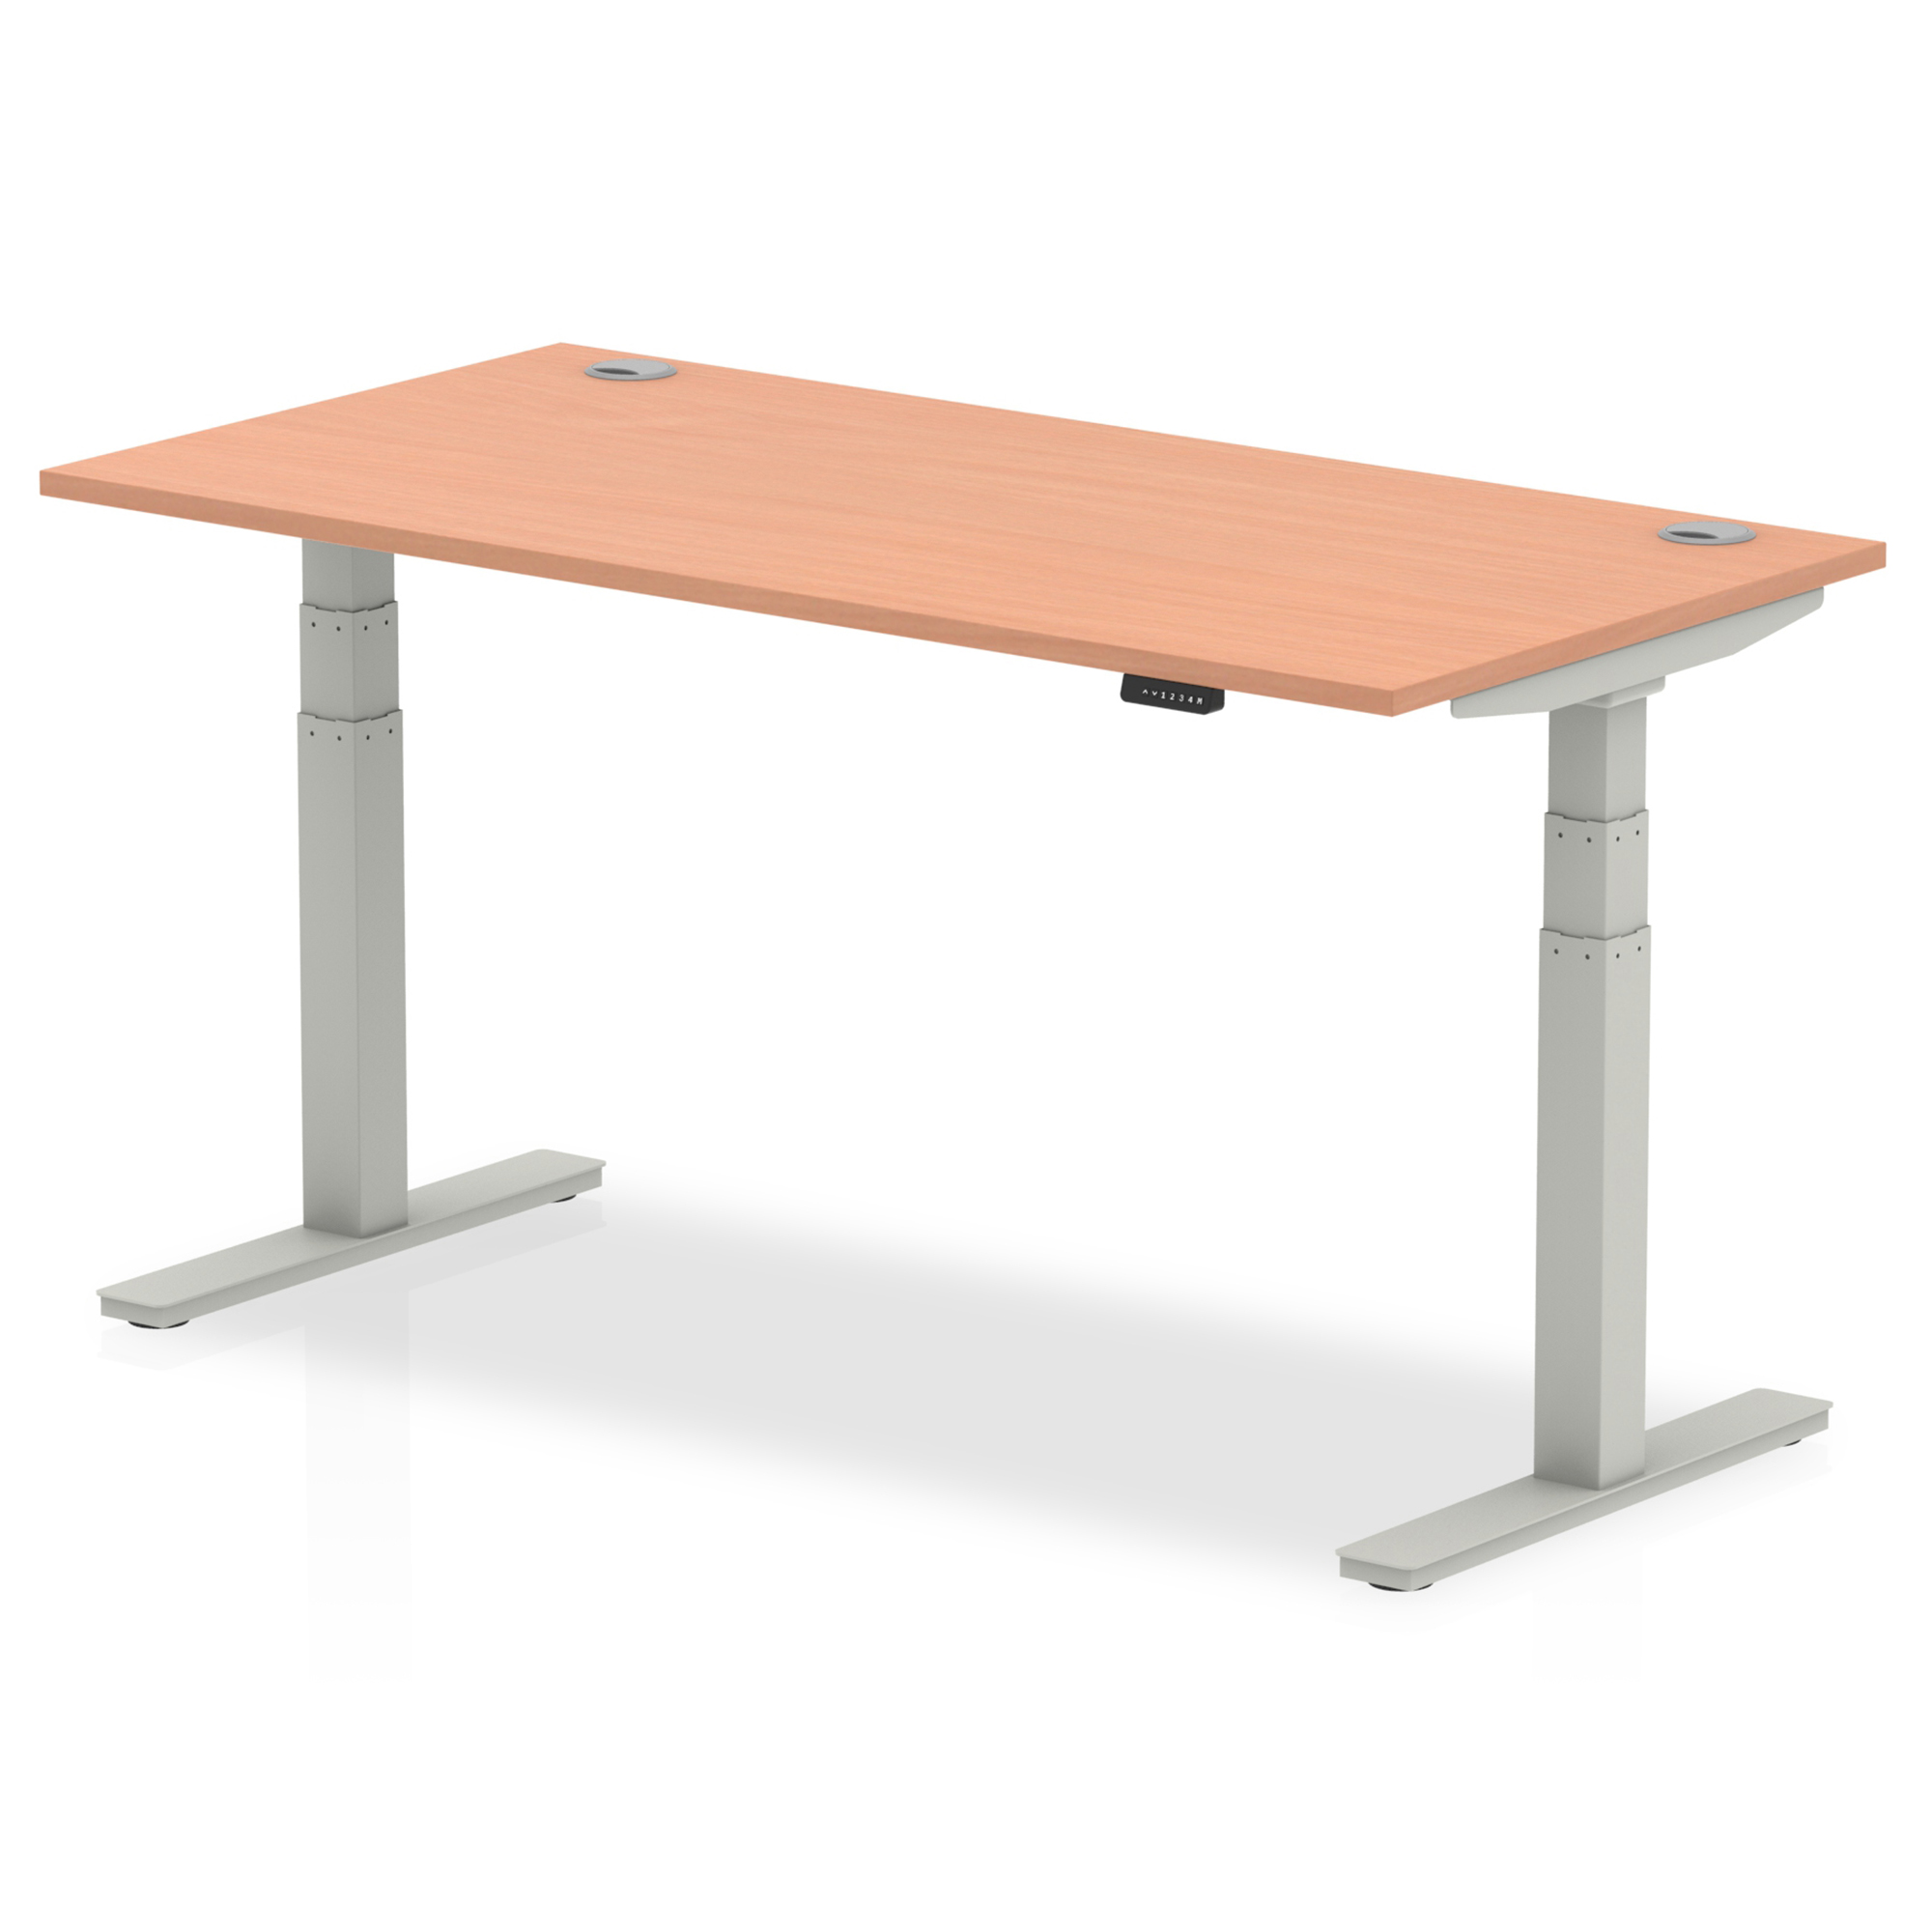 Trexus Sit Stand Desk With Cable Ports Silver Legs 1600x800mm Beech Ref HA01083